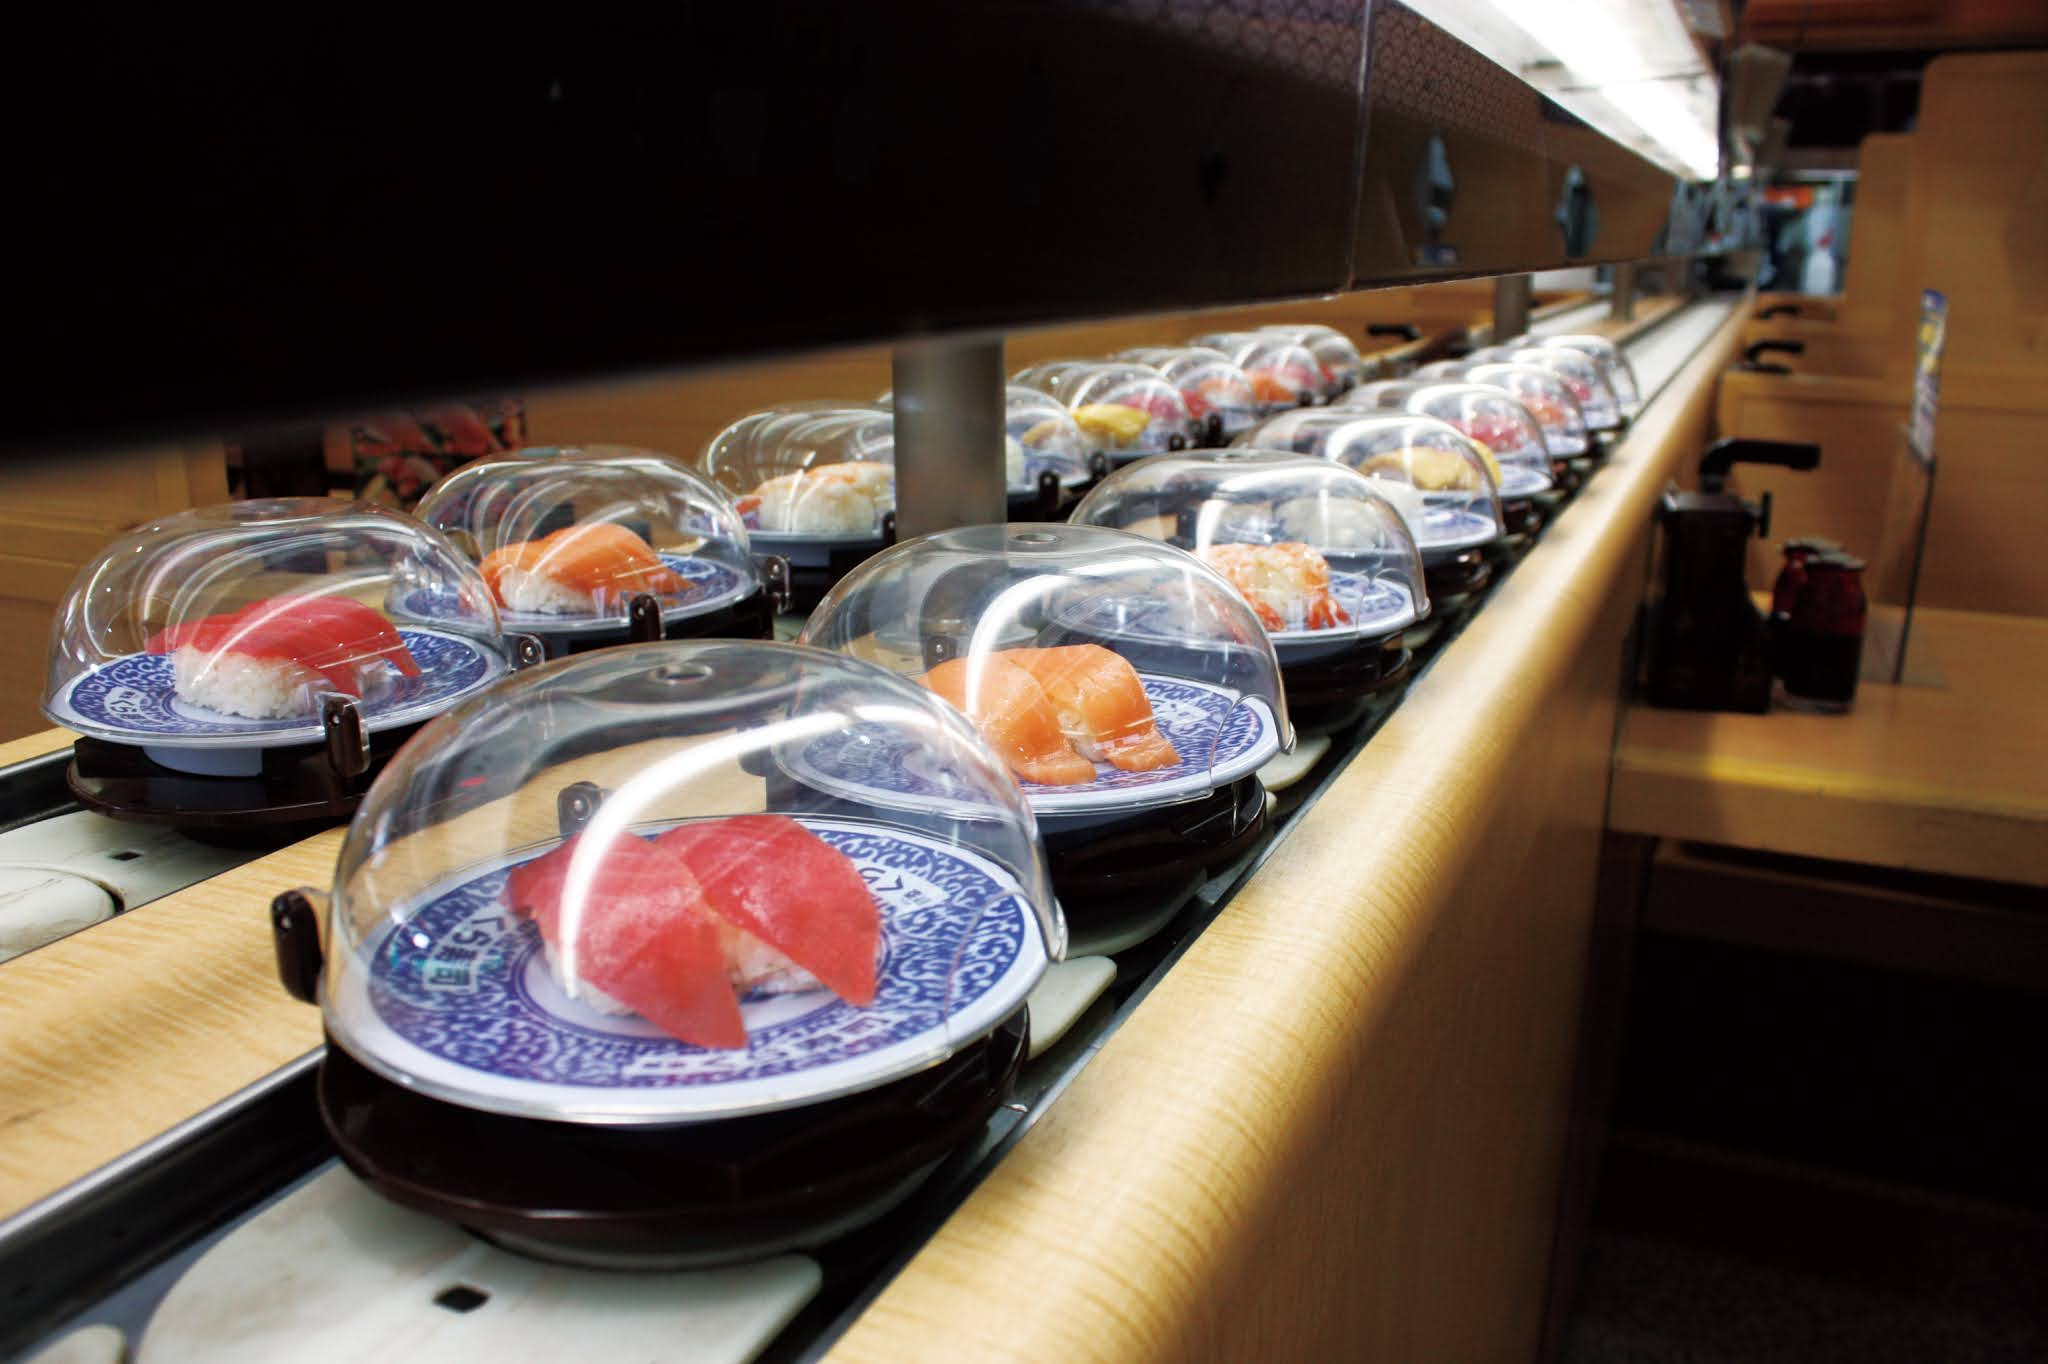 Kura Sushi designed their intelligent QA system using a Raspberry Pi paired with the Coral USB Accelerator